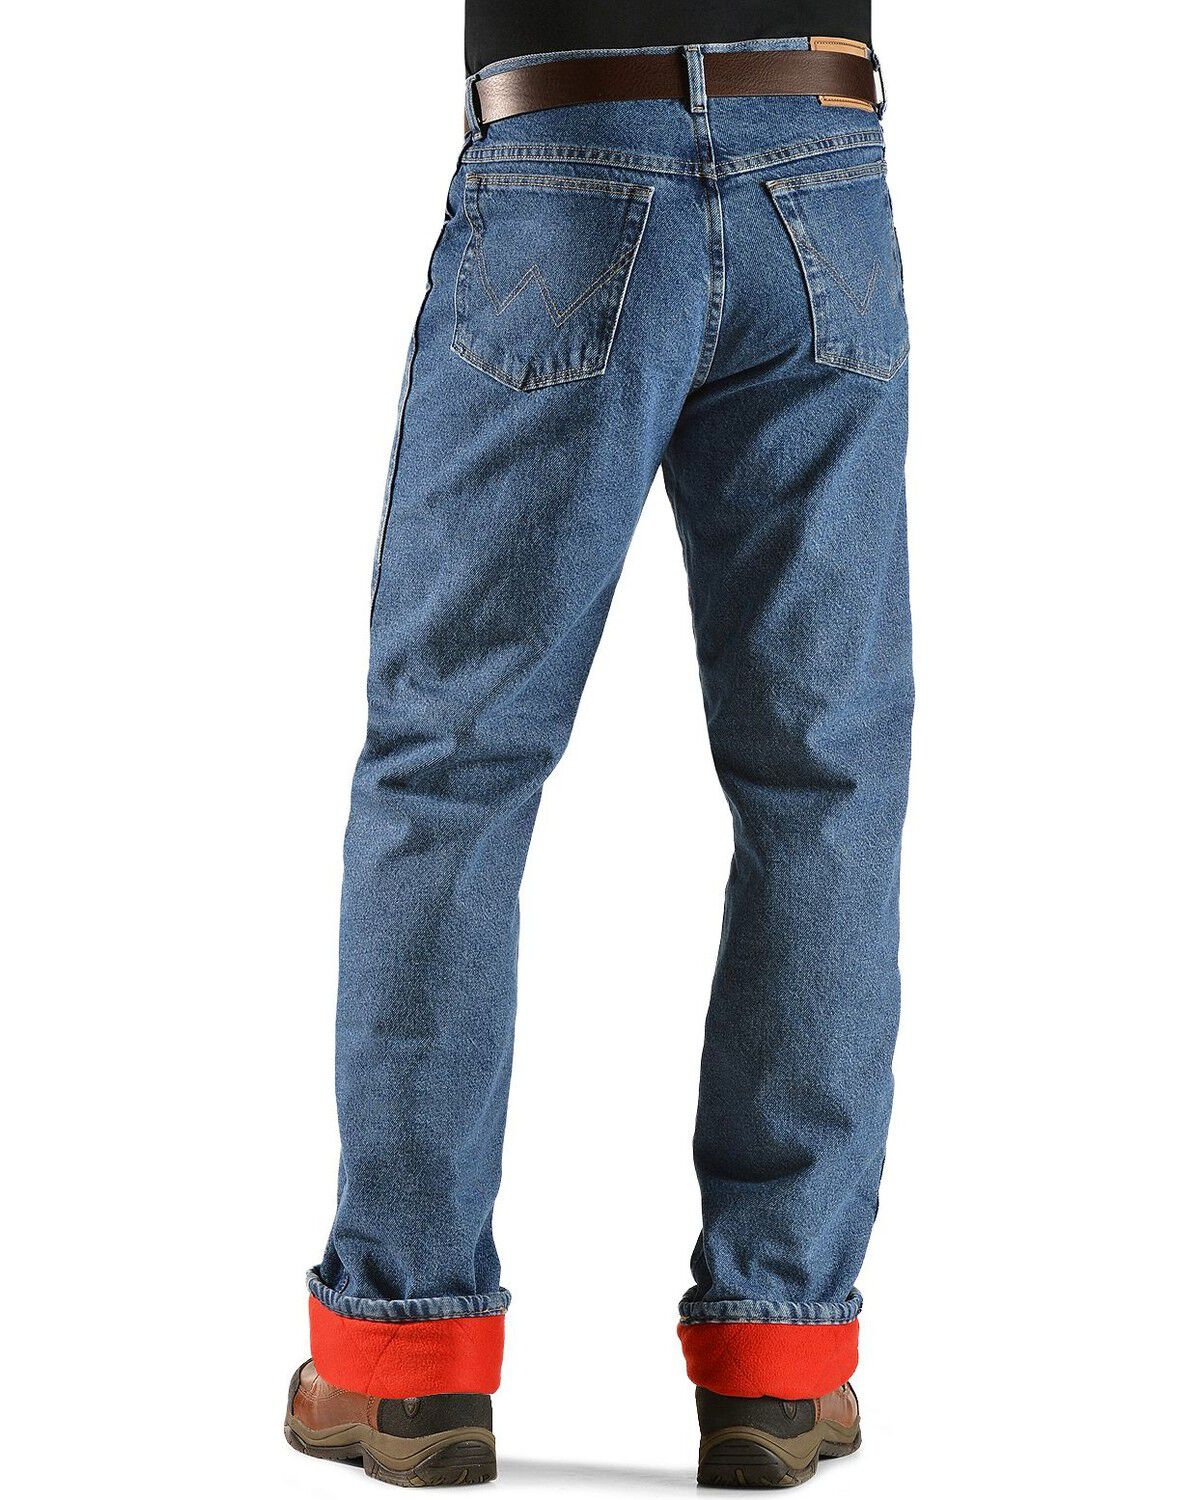 Wrangler Jeans   Rugged Wear Relaxed Fit Flannel Lined, Stonewash, Hi Res